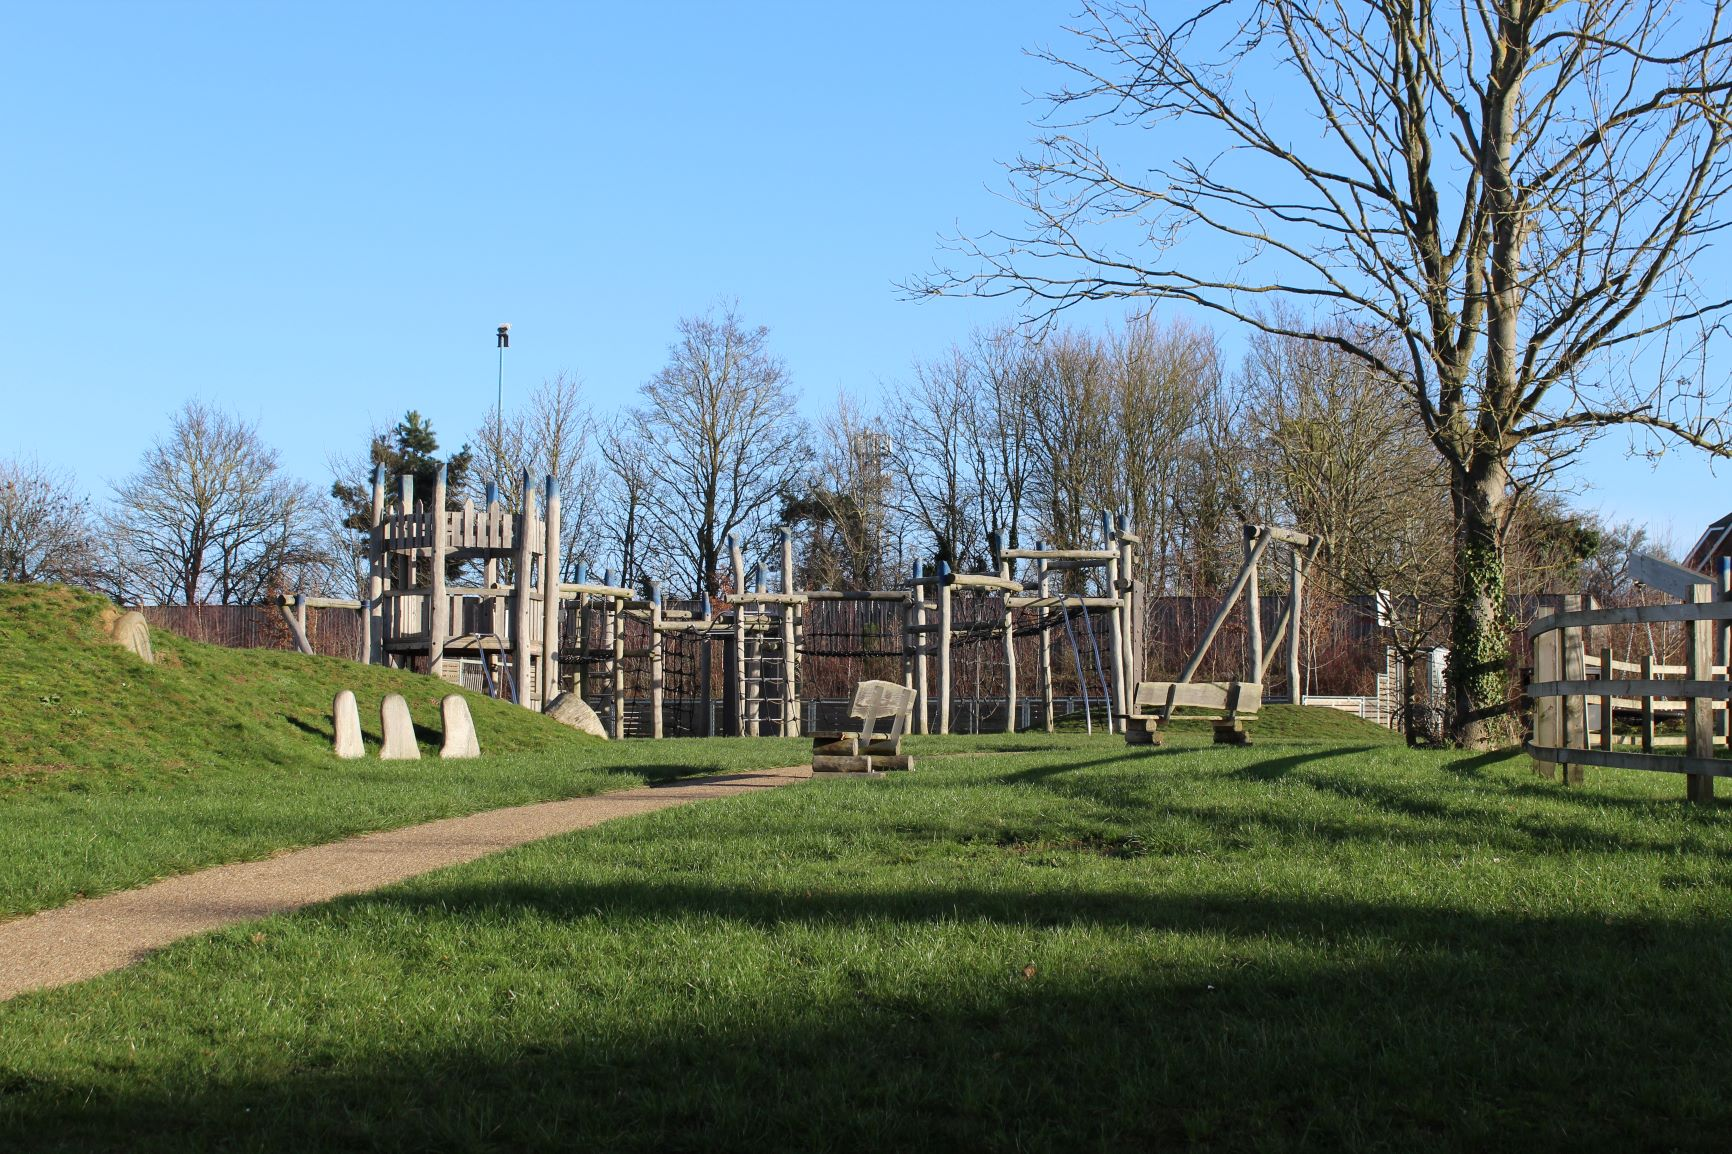 Redhouse Play Park